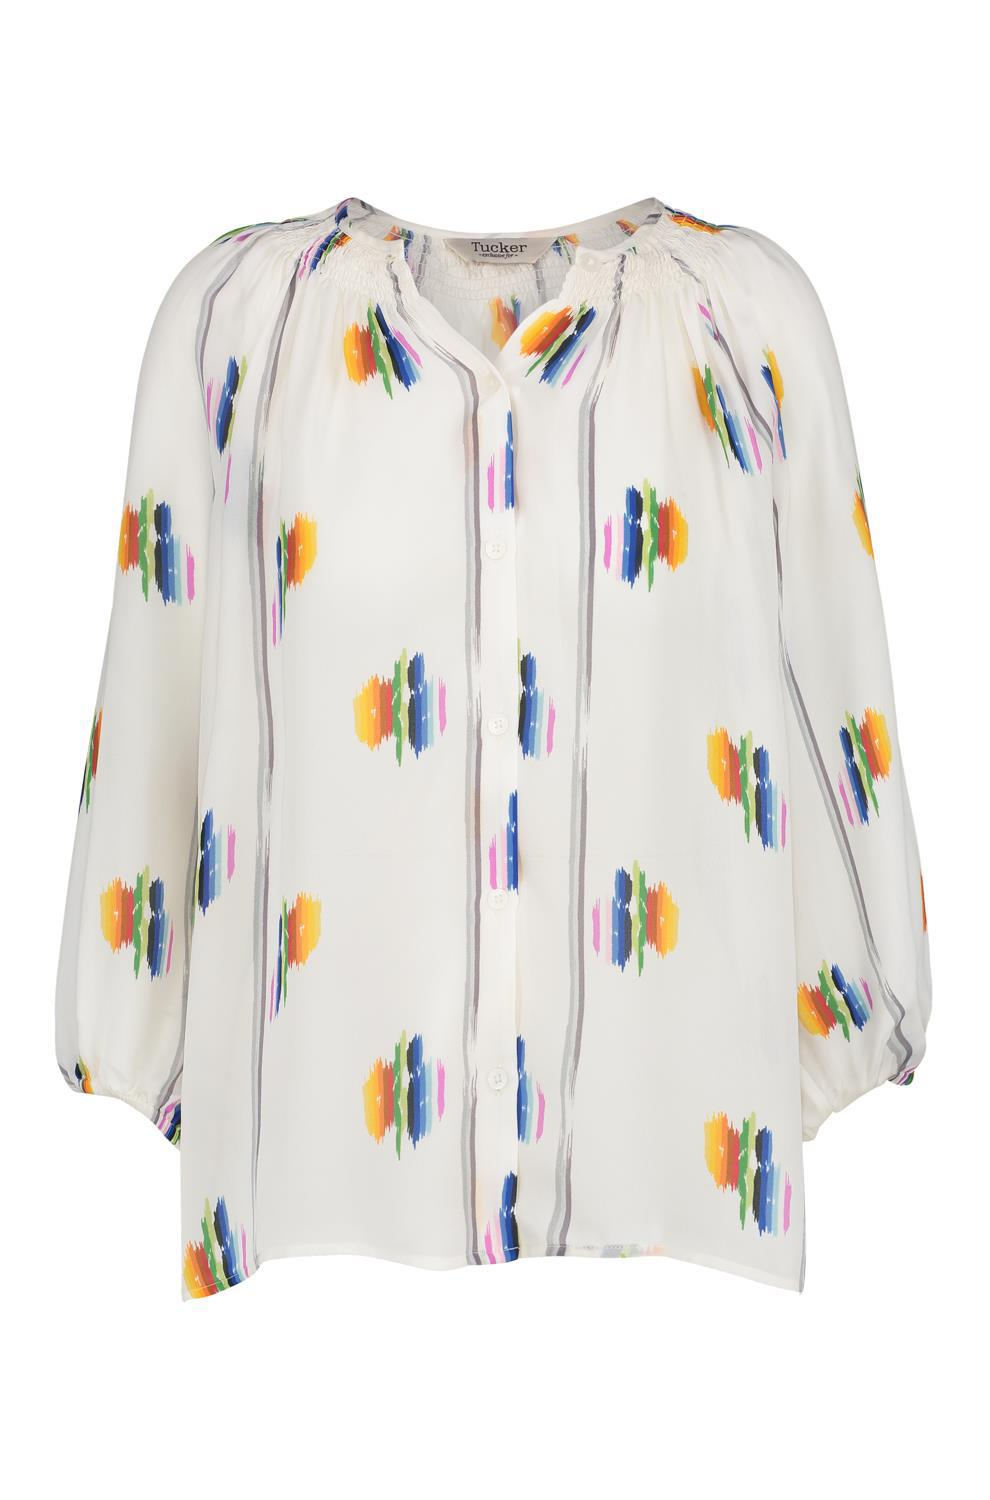 5278917ef69f8 Tucker Classic Blouse In Follow The Rainbow in Blue - Lyst